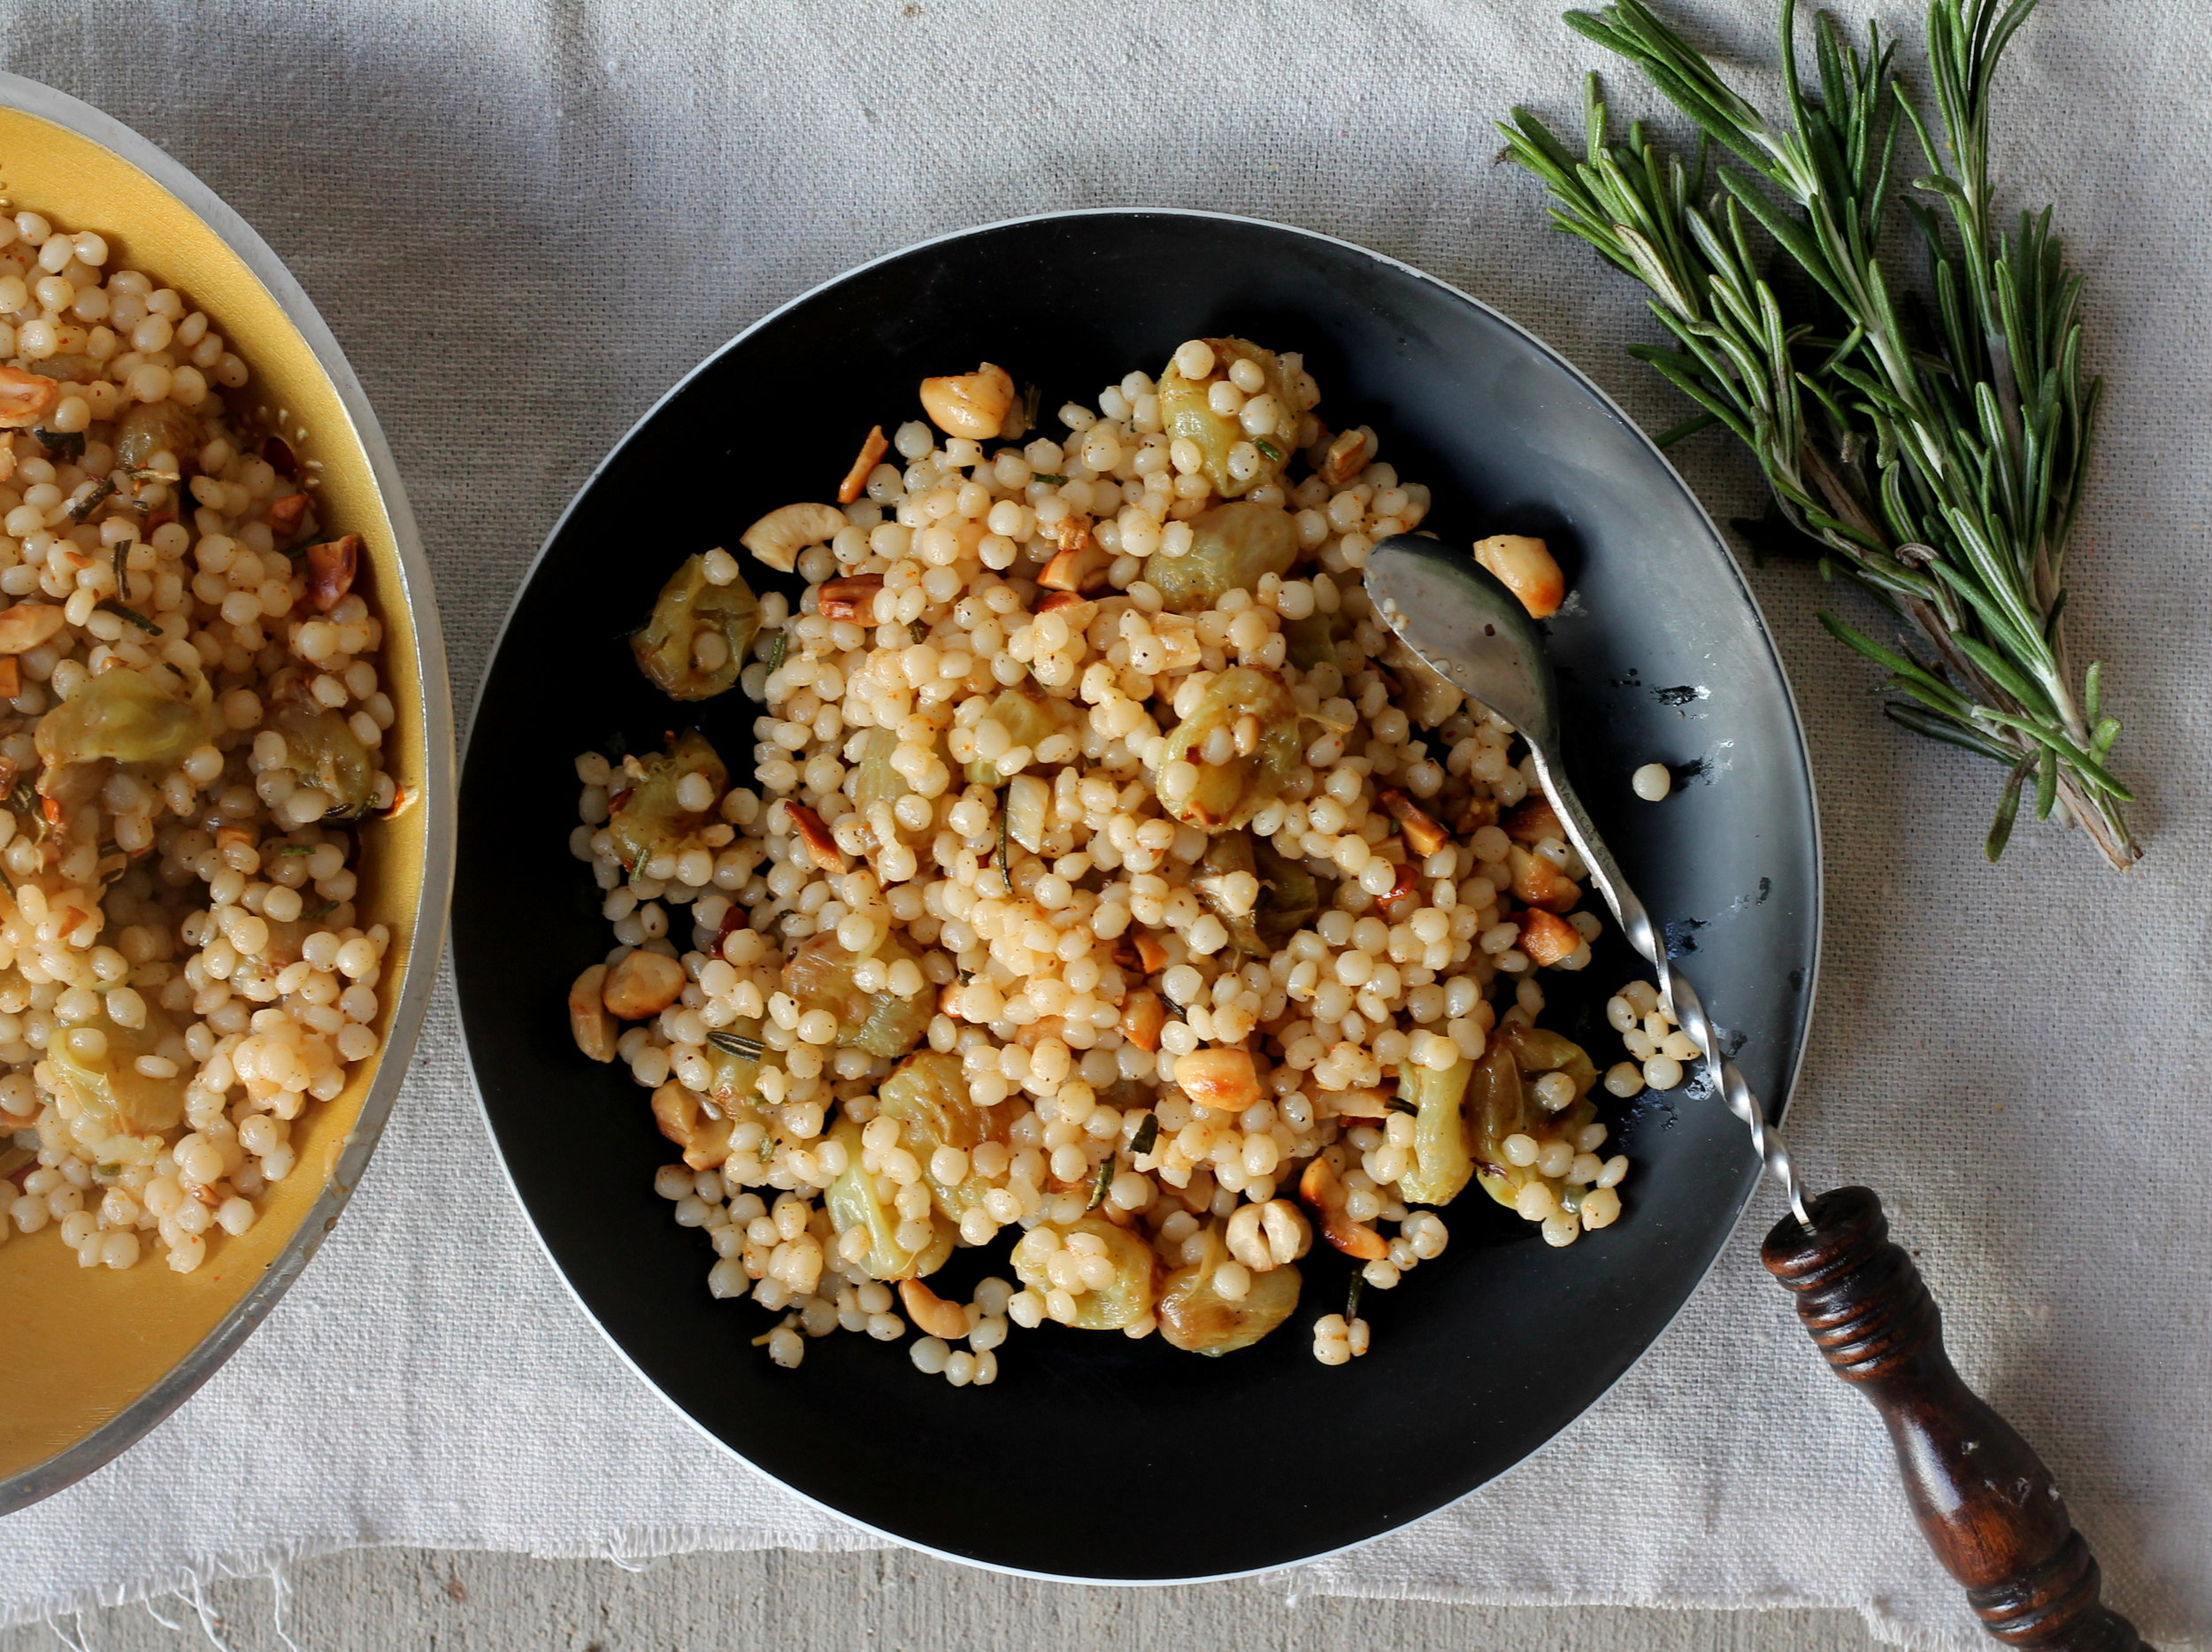 isareali couscous with roasted grapes and rosemary